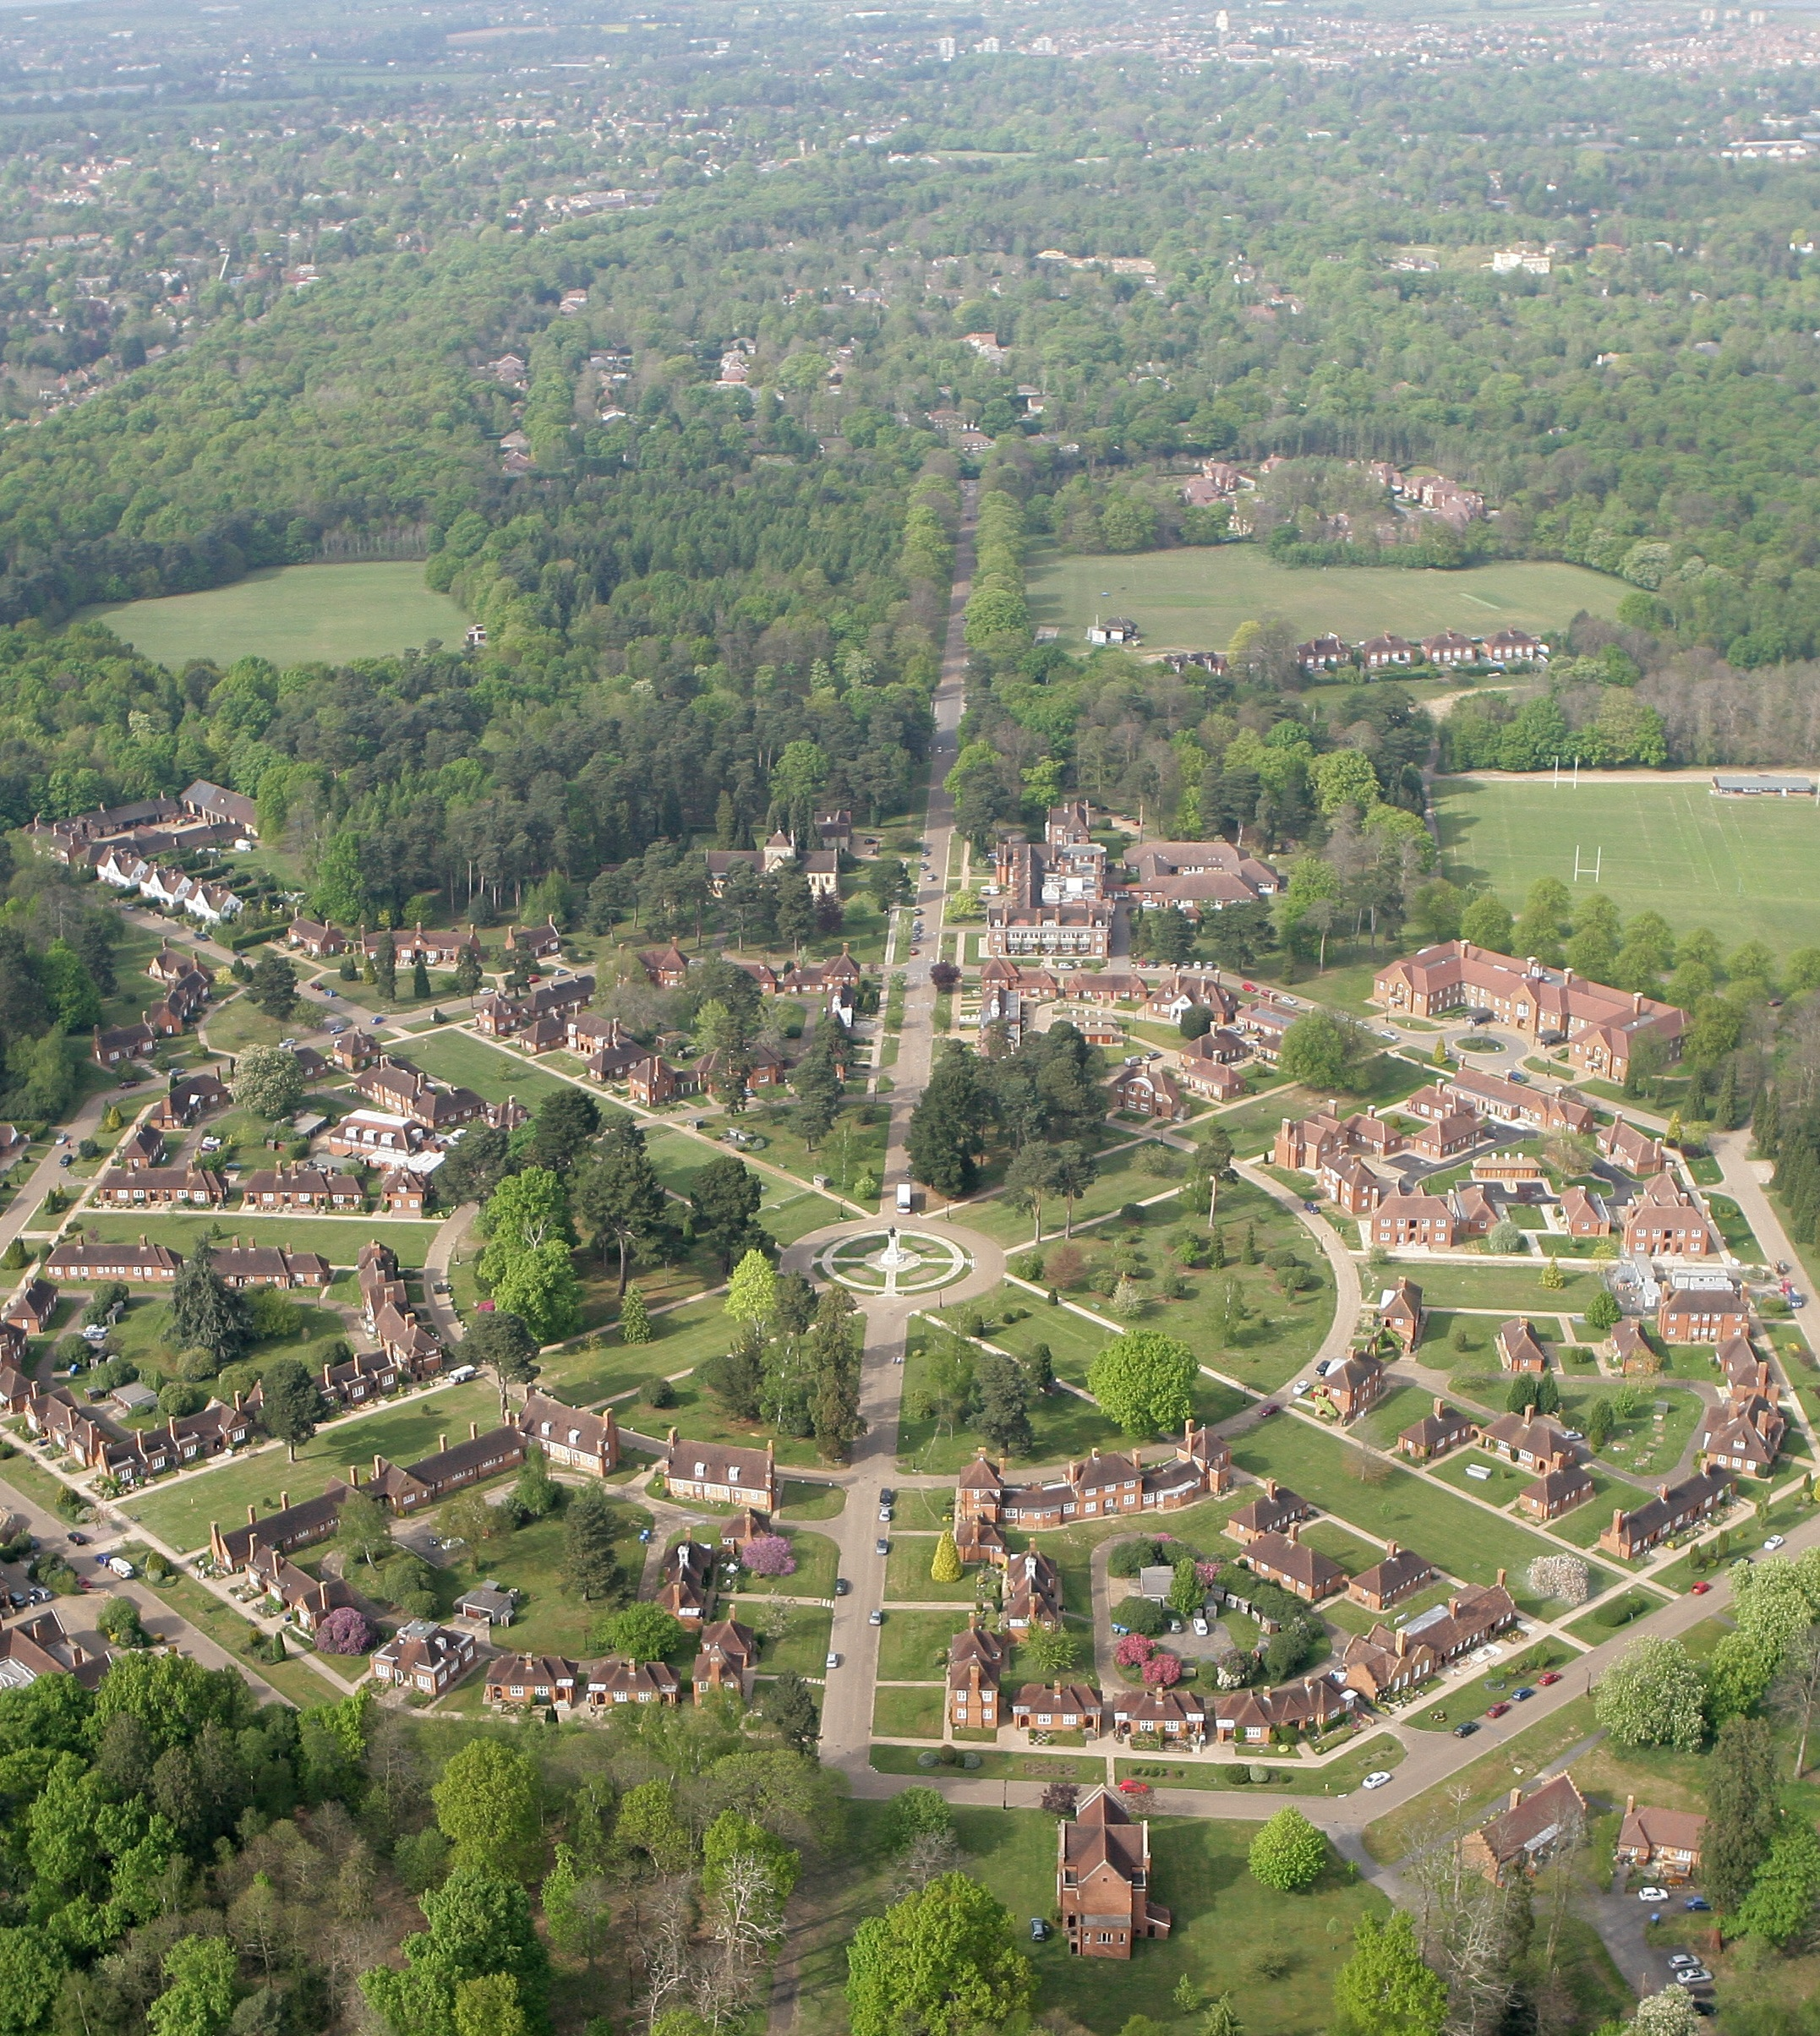 File Aerial View Of Whiteley Village Jpg Wikimedia Commons